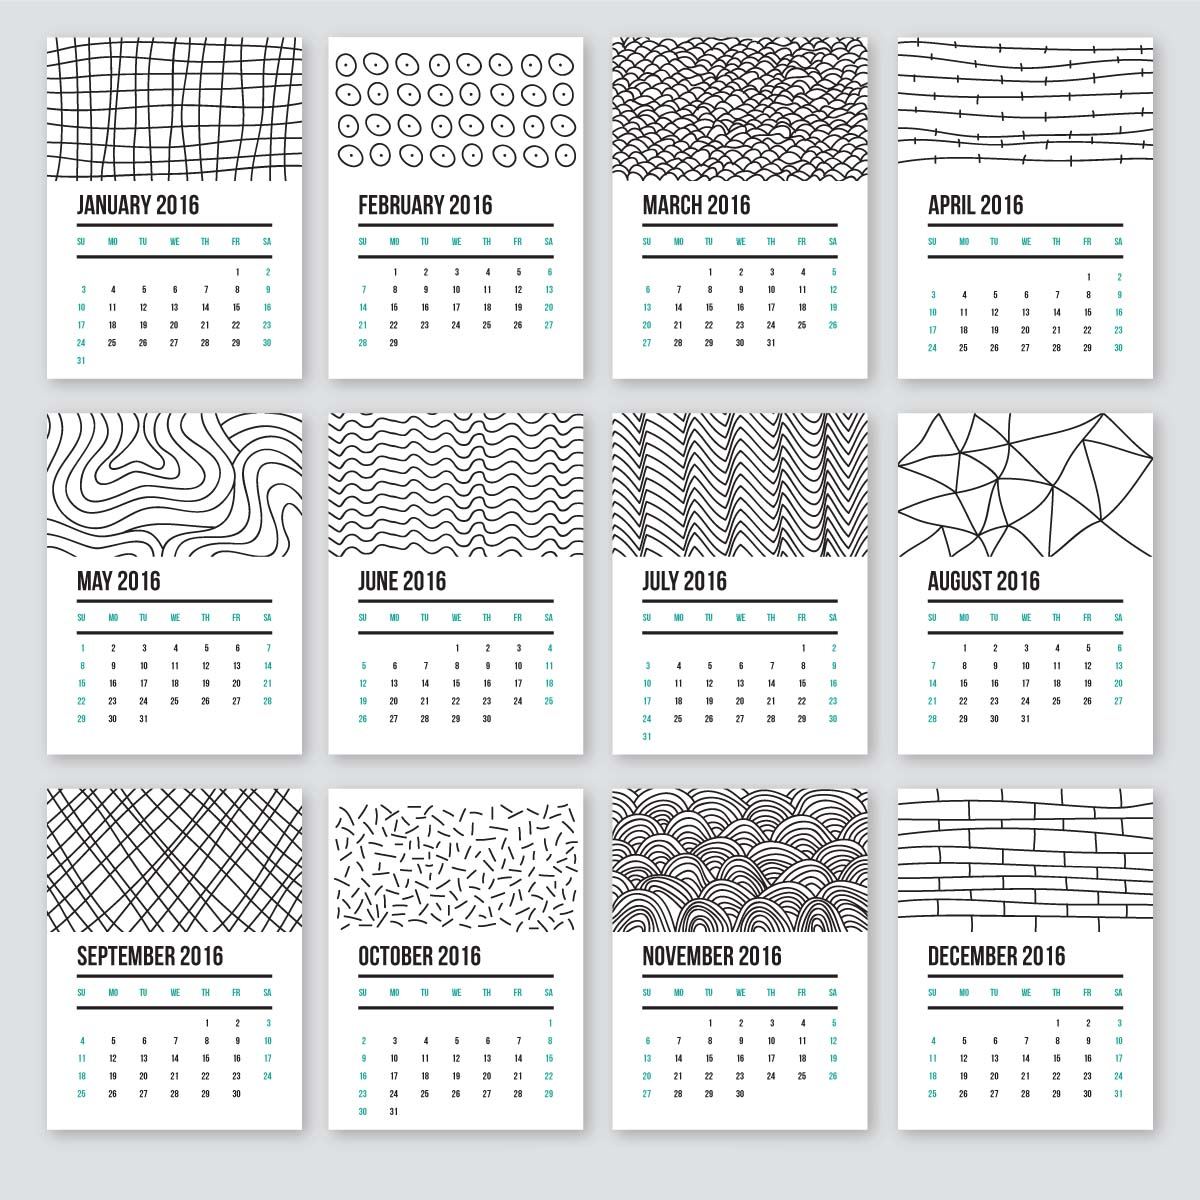 Cute Calendar Templates 2016 : Cute calendar in doodle style free download